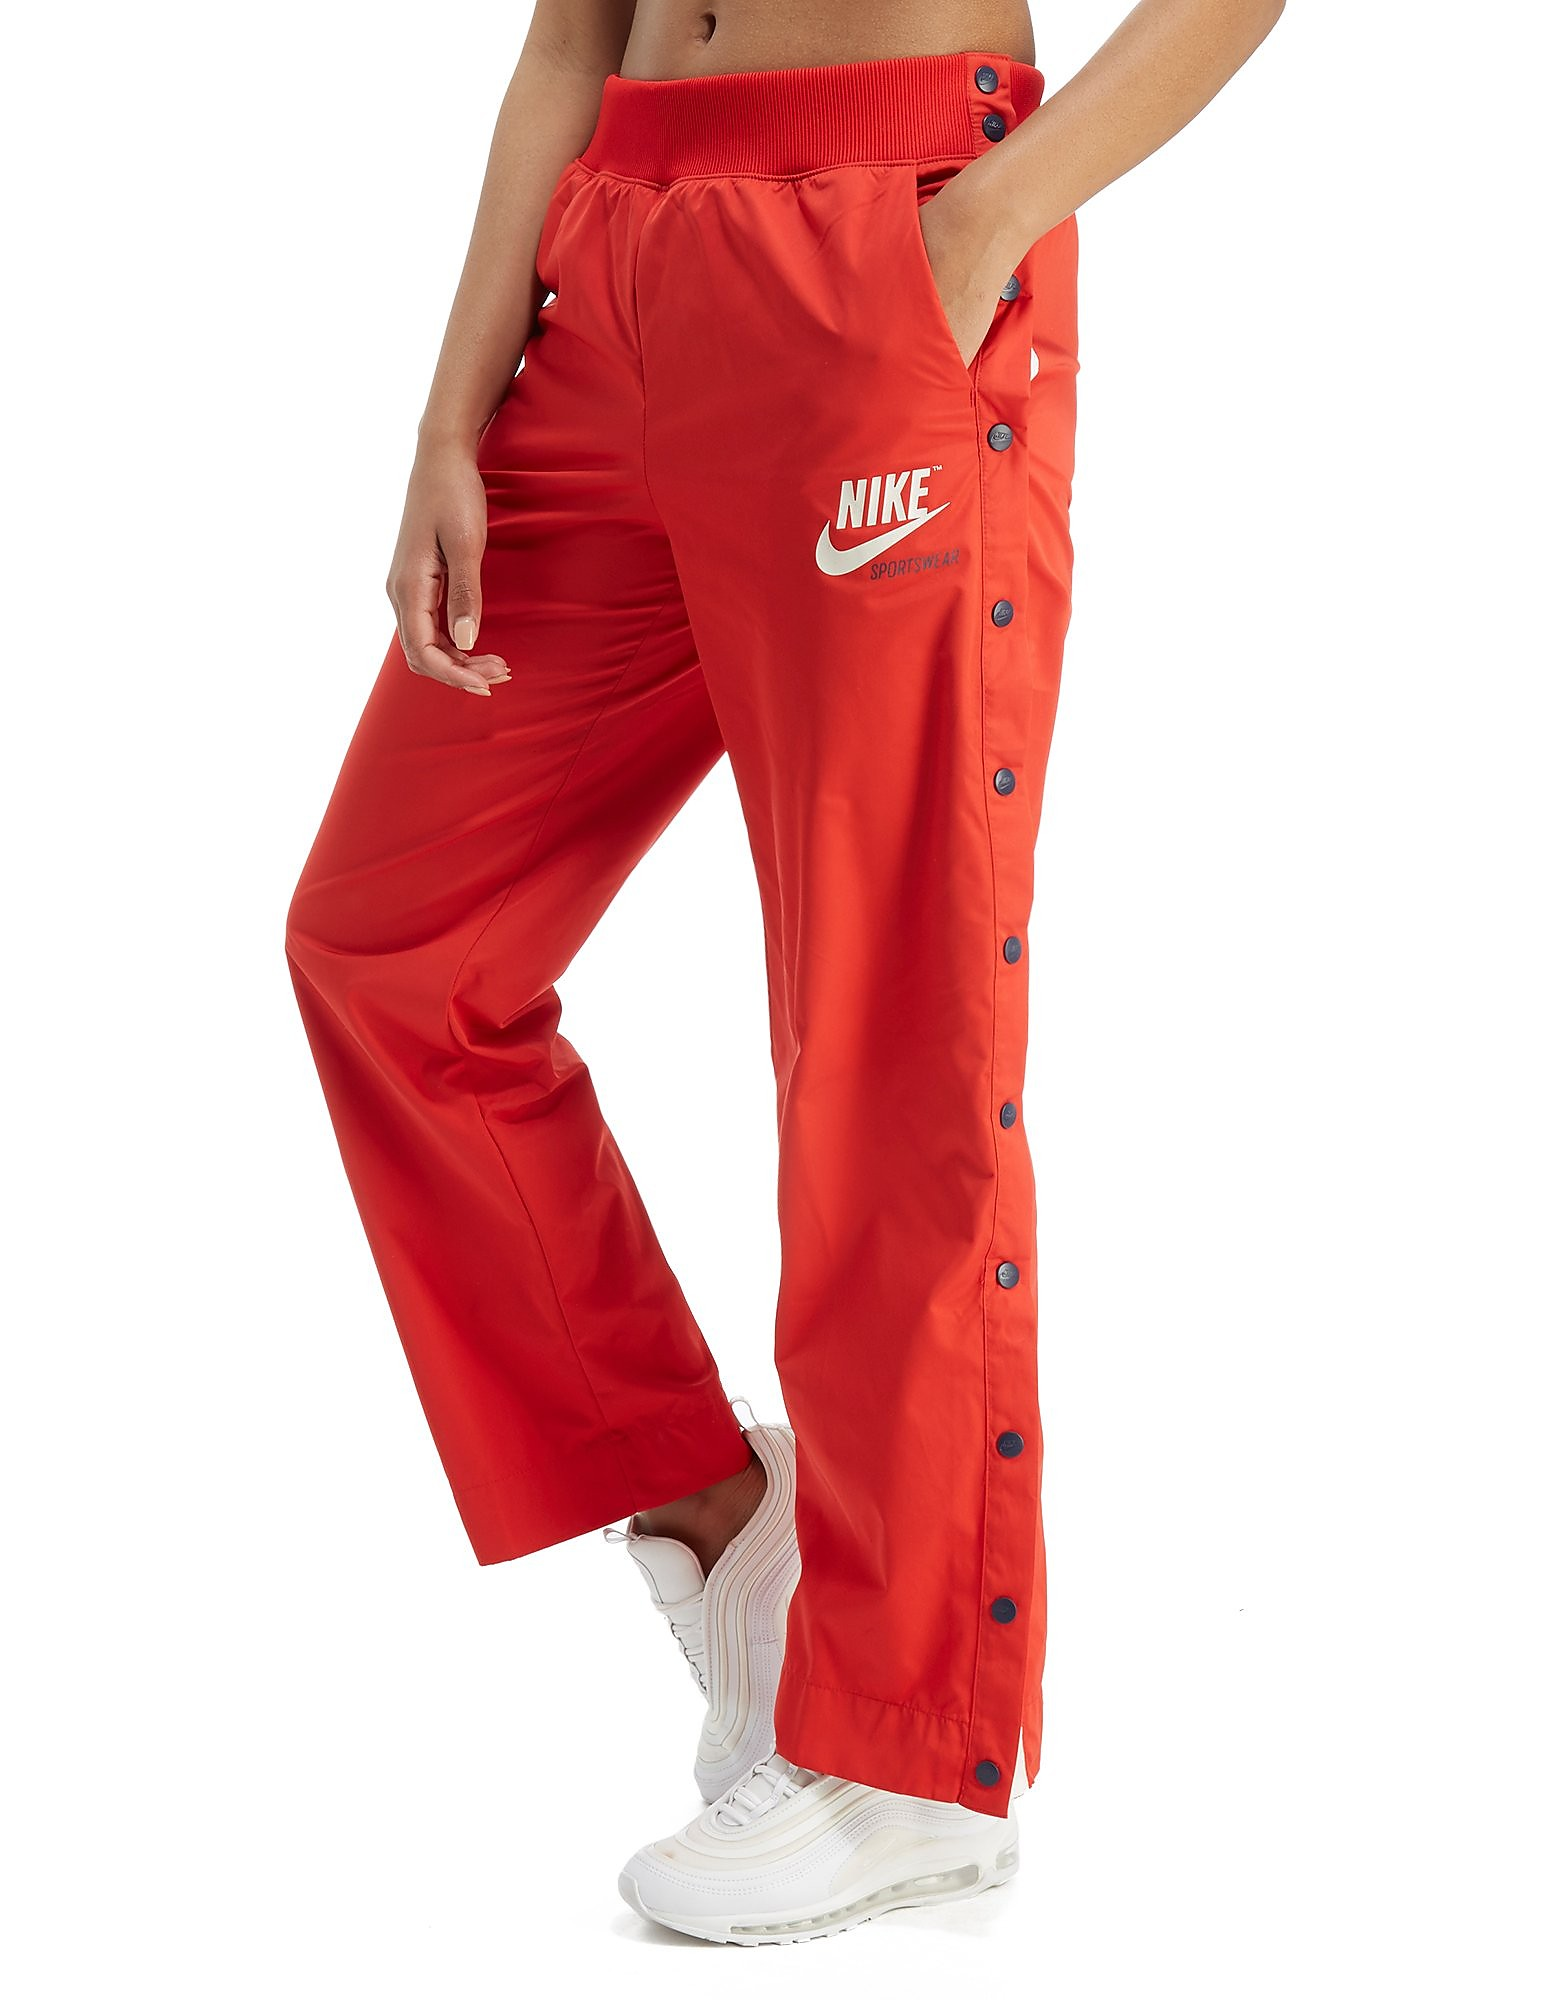 Nike Archive Snap Pants